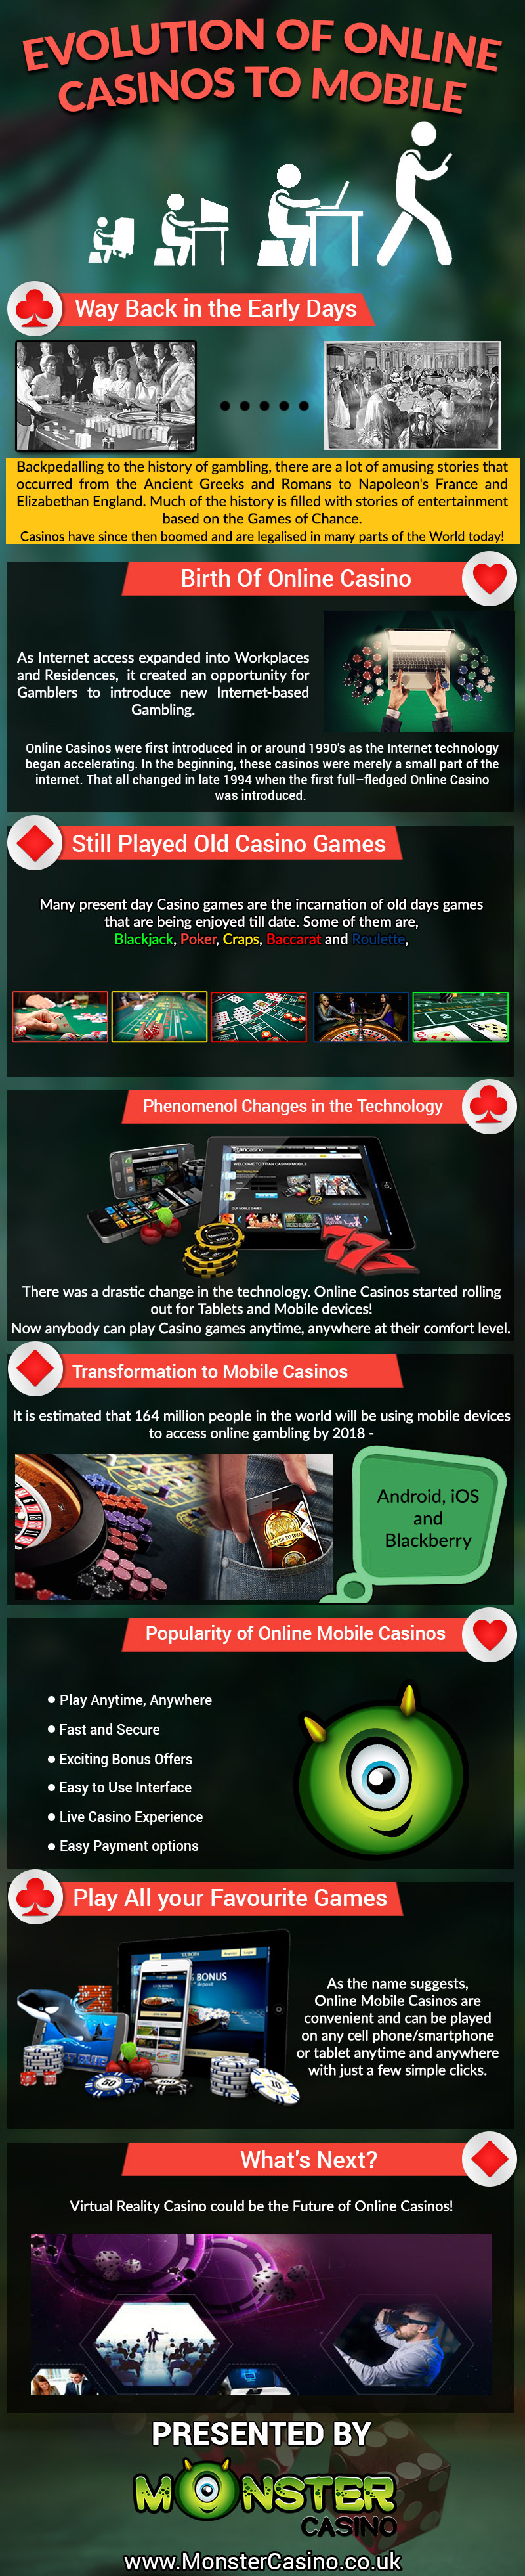 Evolution of Online Casinos: The Transformation to Mobile Gambling - Infographic